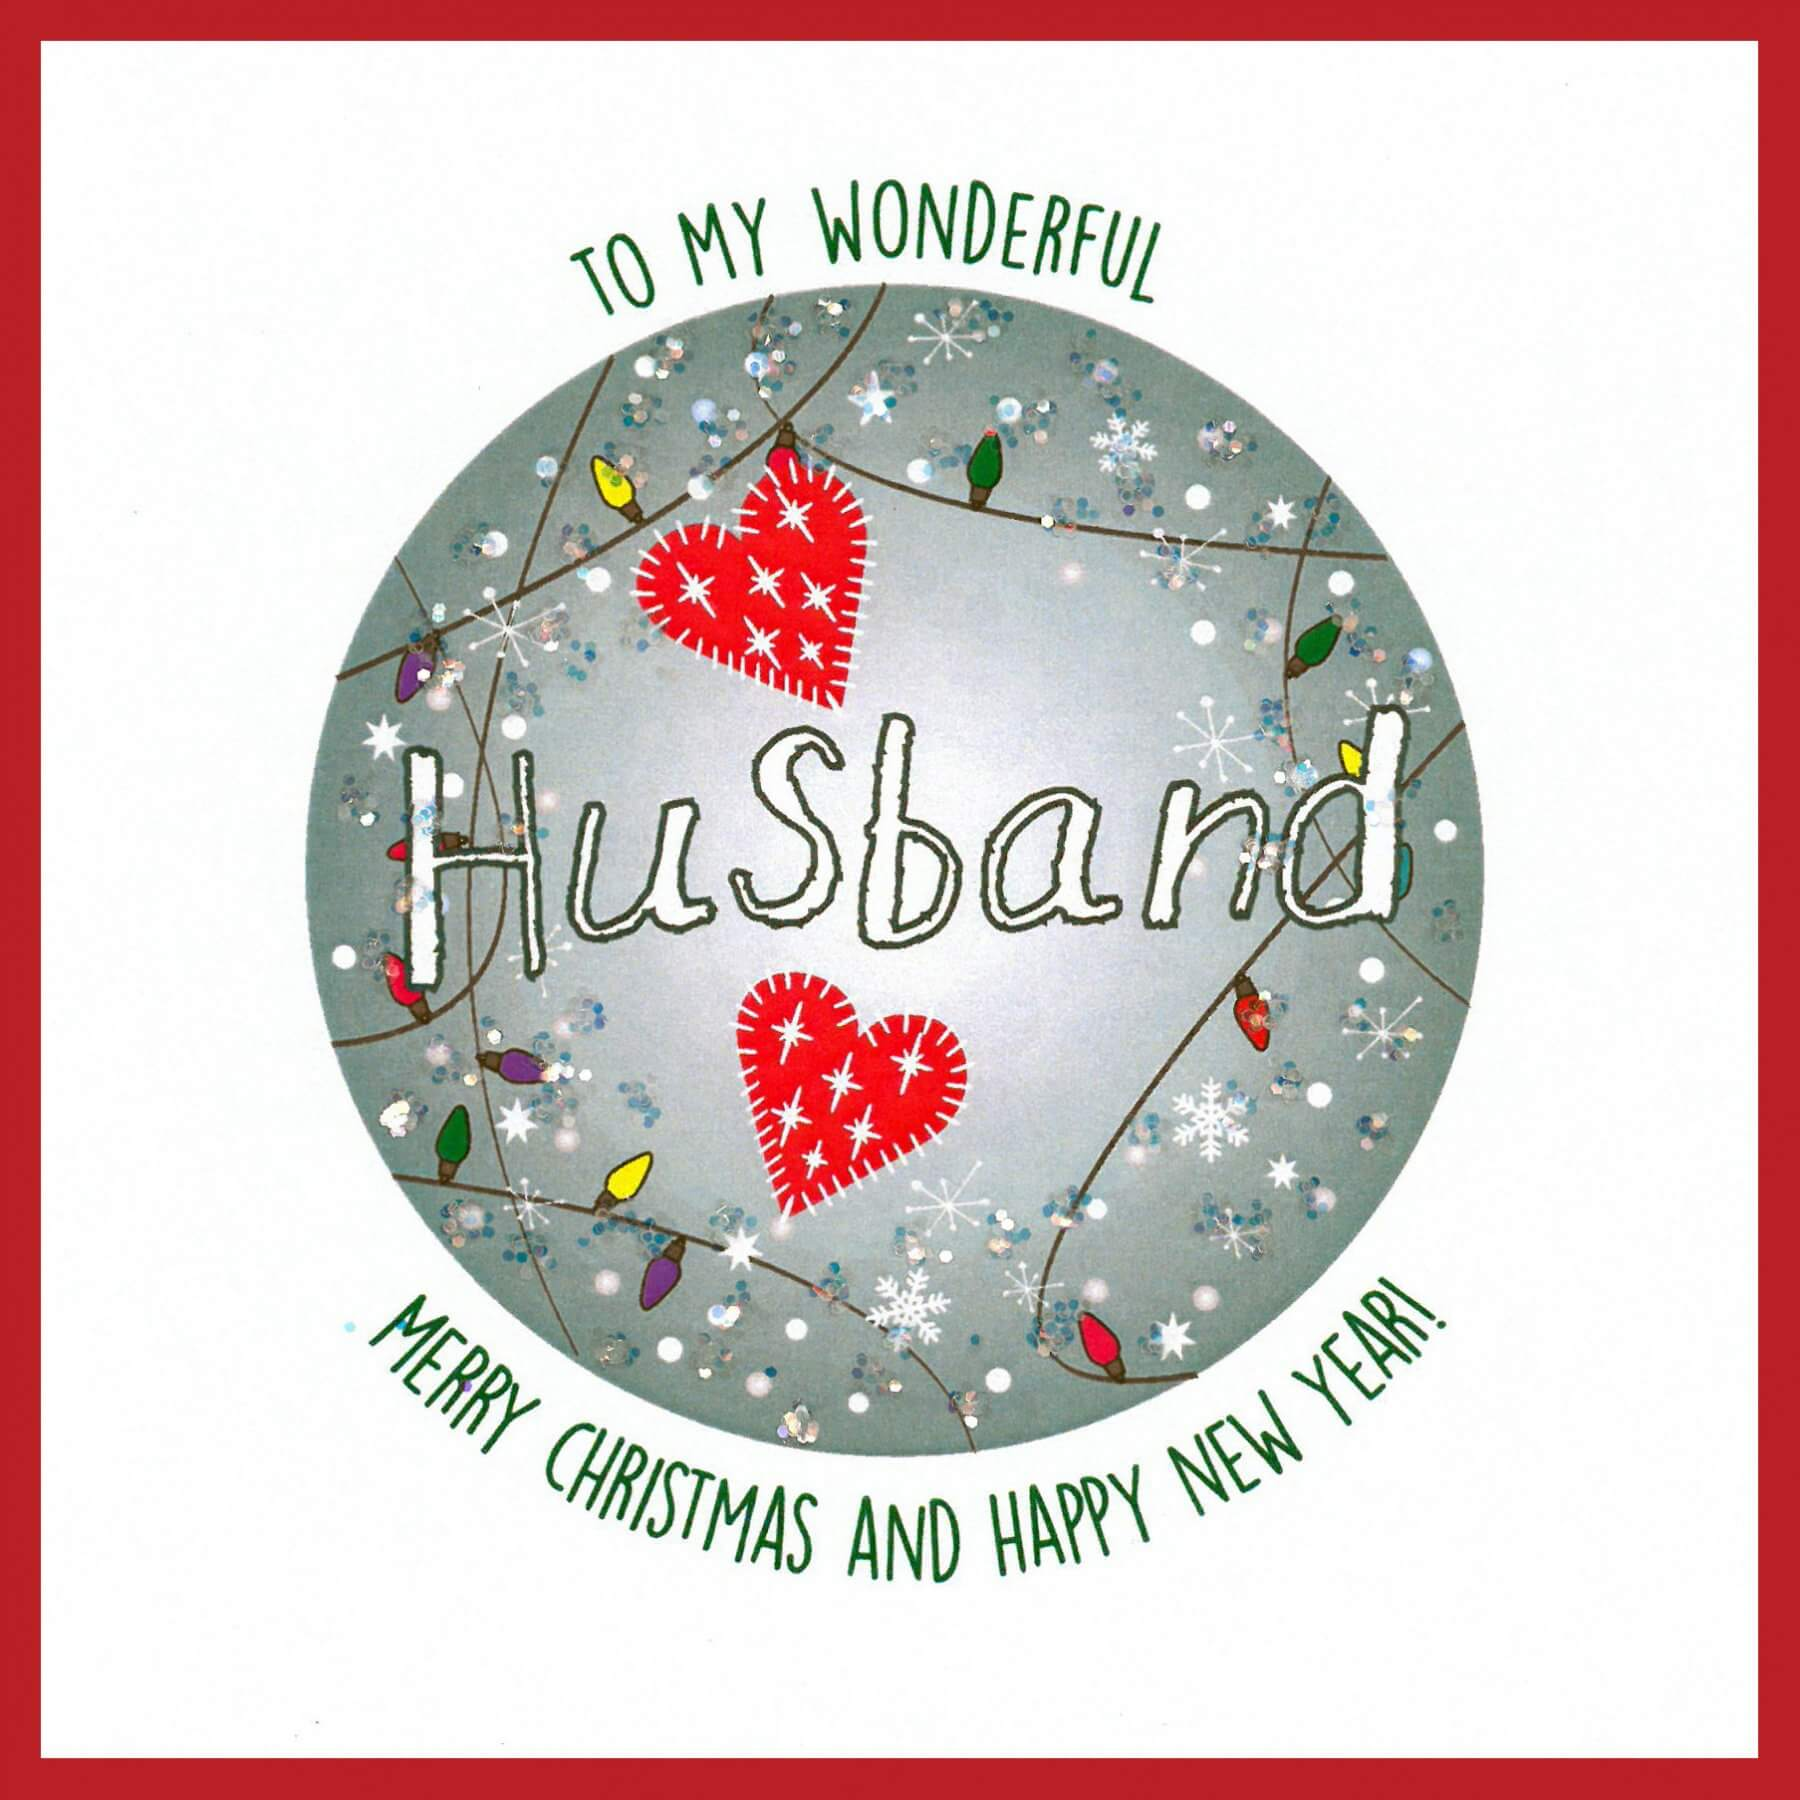 To my wonderful husband merry christmas and a happy new year more views to my wonderful husband merry christmas and a happy new year kristyandbryce Choice Image